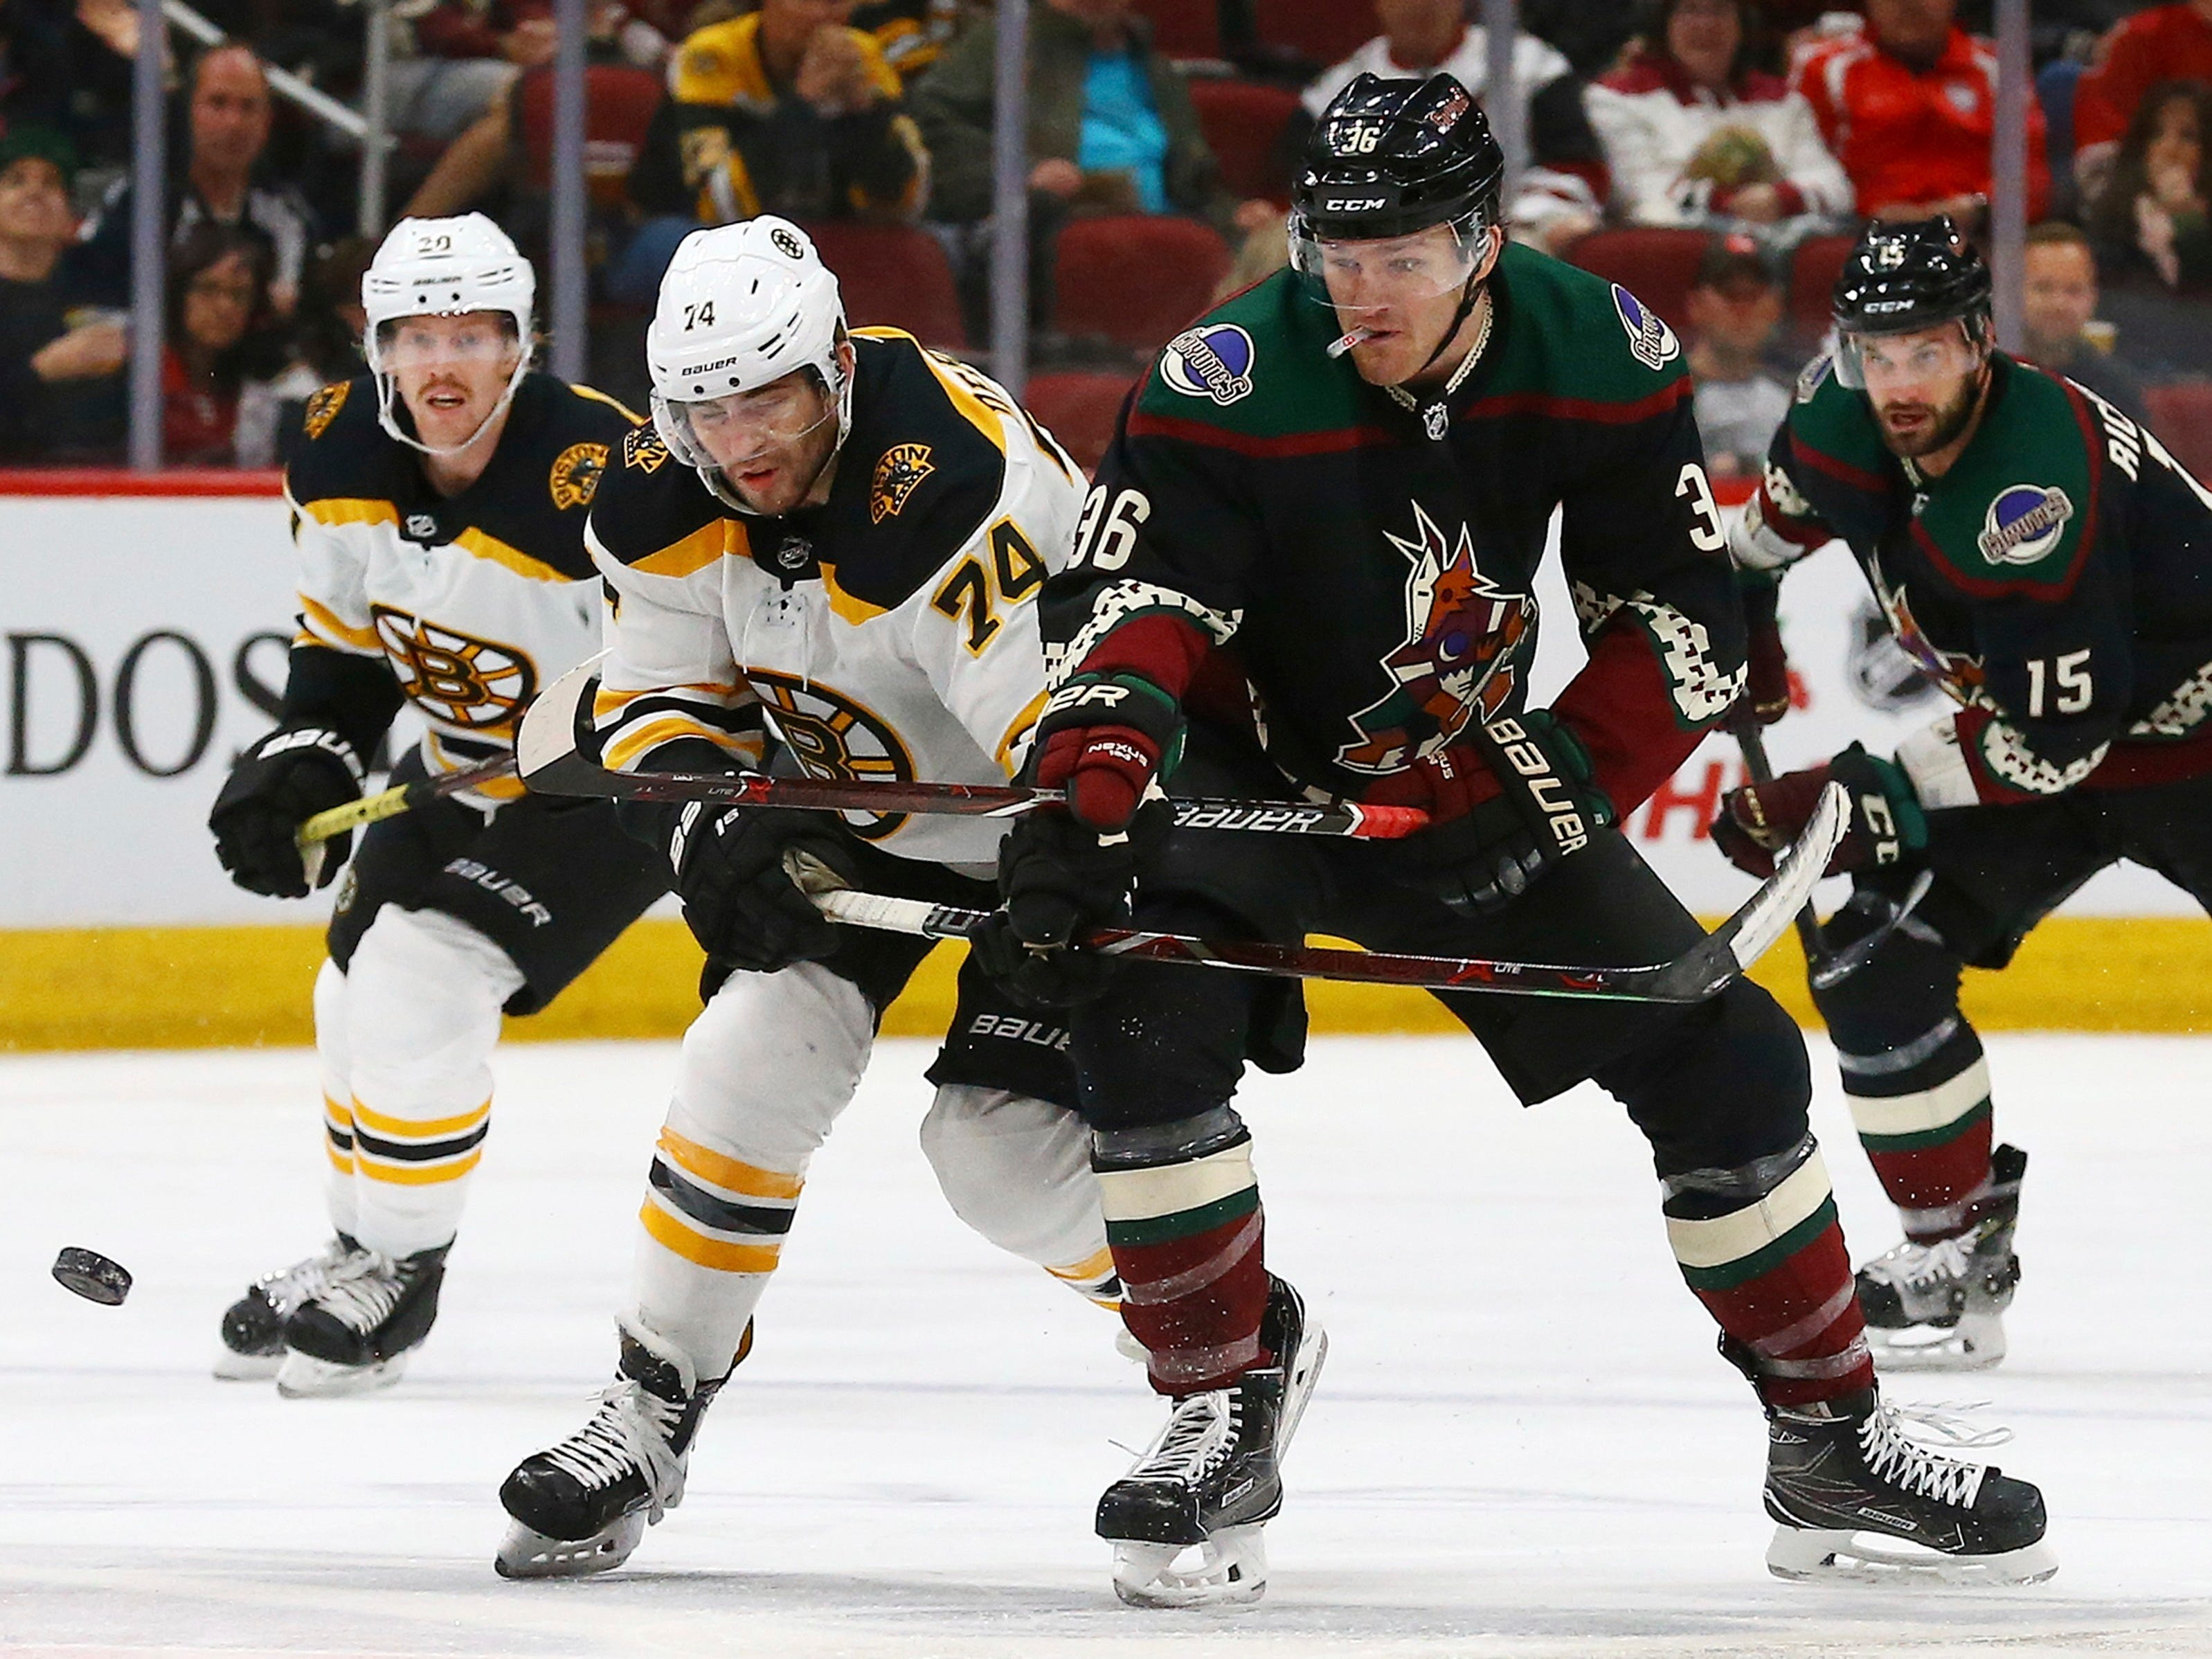 Arizona Coyotes right wing Christian Fischer (36) battles with Boston Bruins left wing Jake DeBrusk (74) for the puck as Bruins center Joakim Nordstrom (20) and Coyotes center Brad Richardson (15) watch during the second period of an NHL hockey game Saturday, Nov. 17, 2018, in Glendale, Ariz. (AP Photo/Ross D. Franklin)